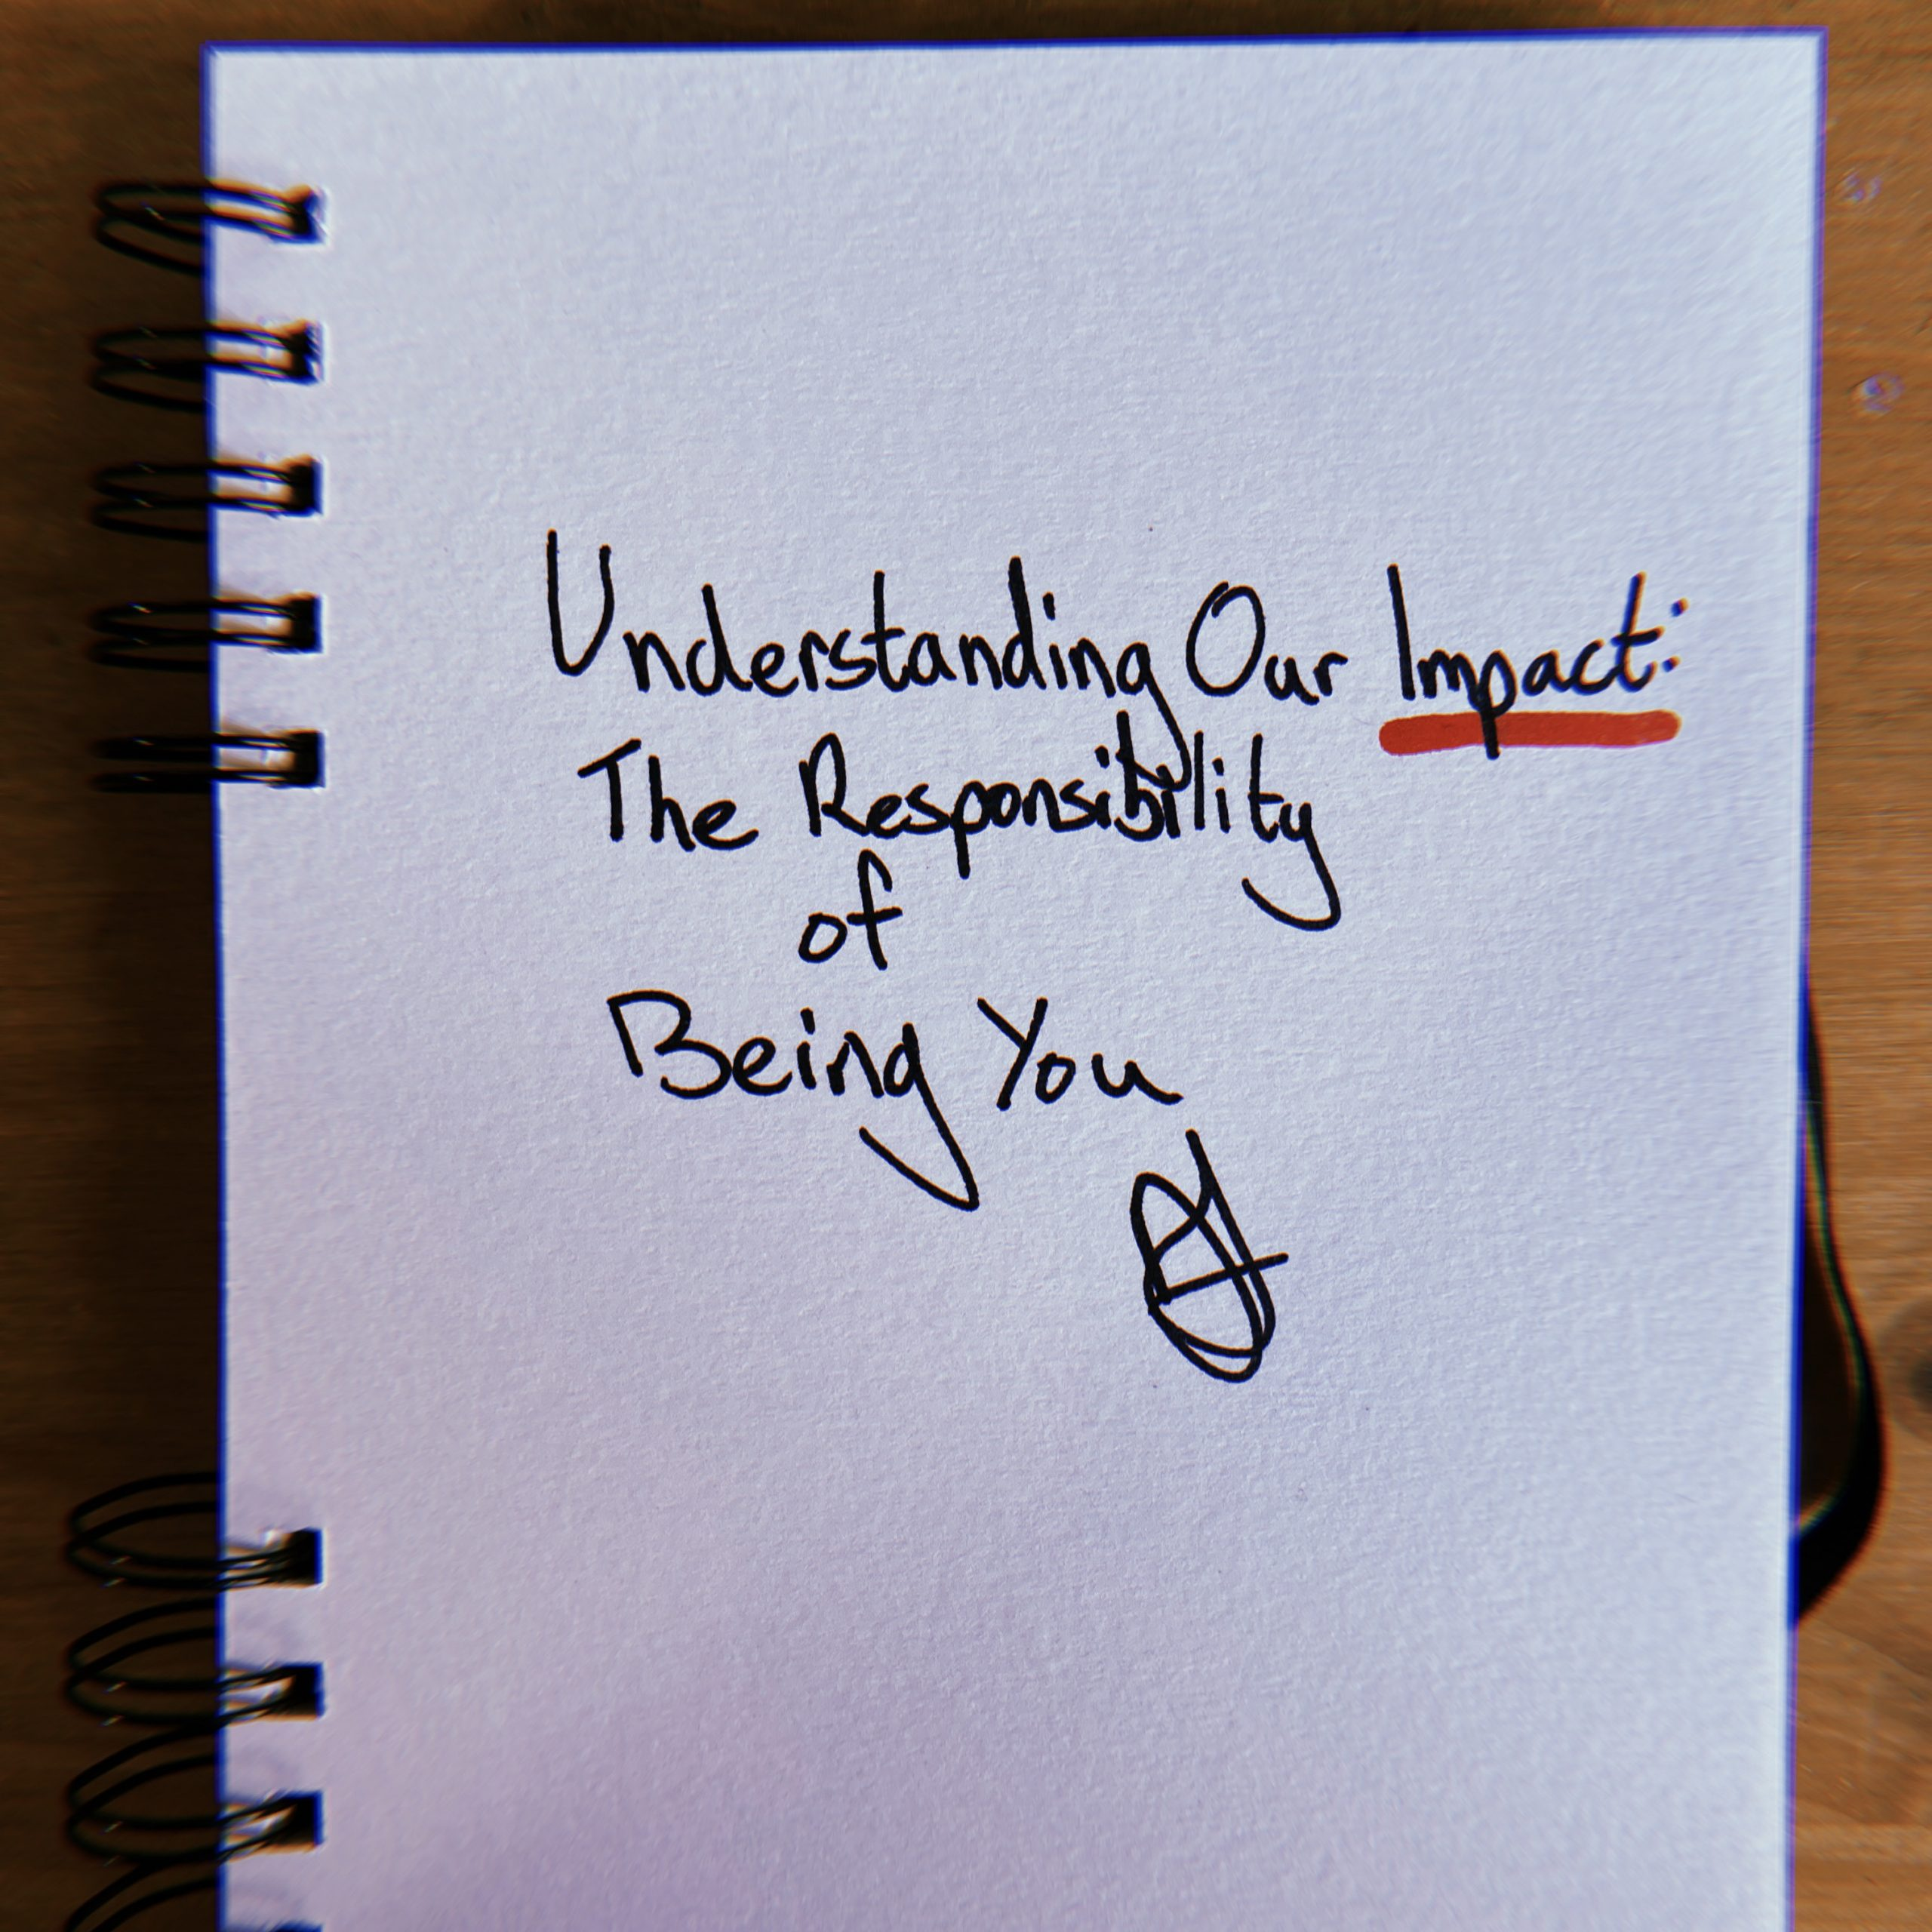 Understanding Our Impact: The Responsibility of Being You